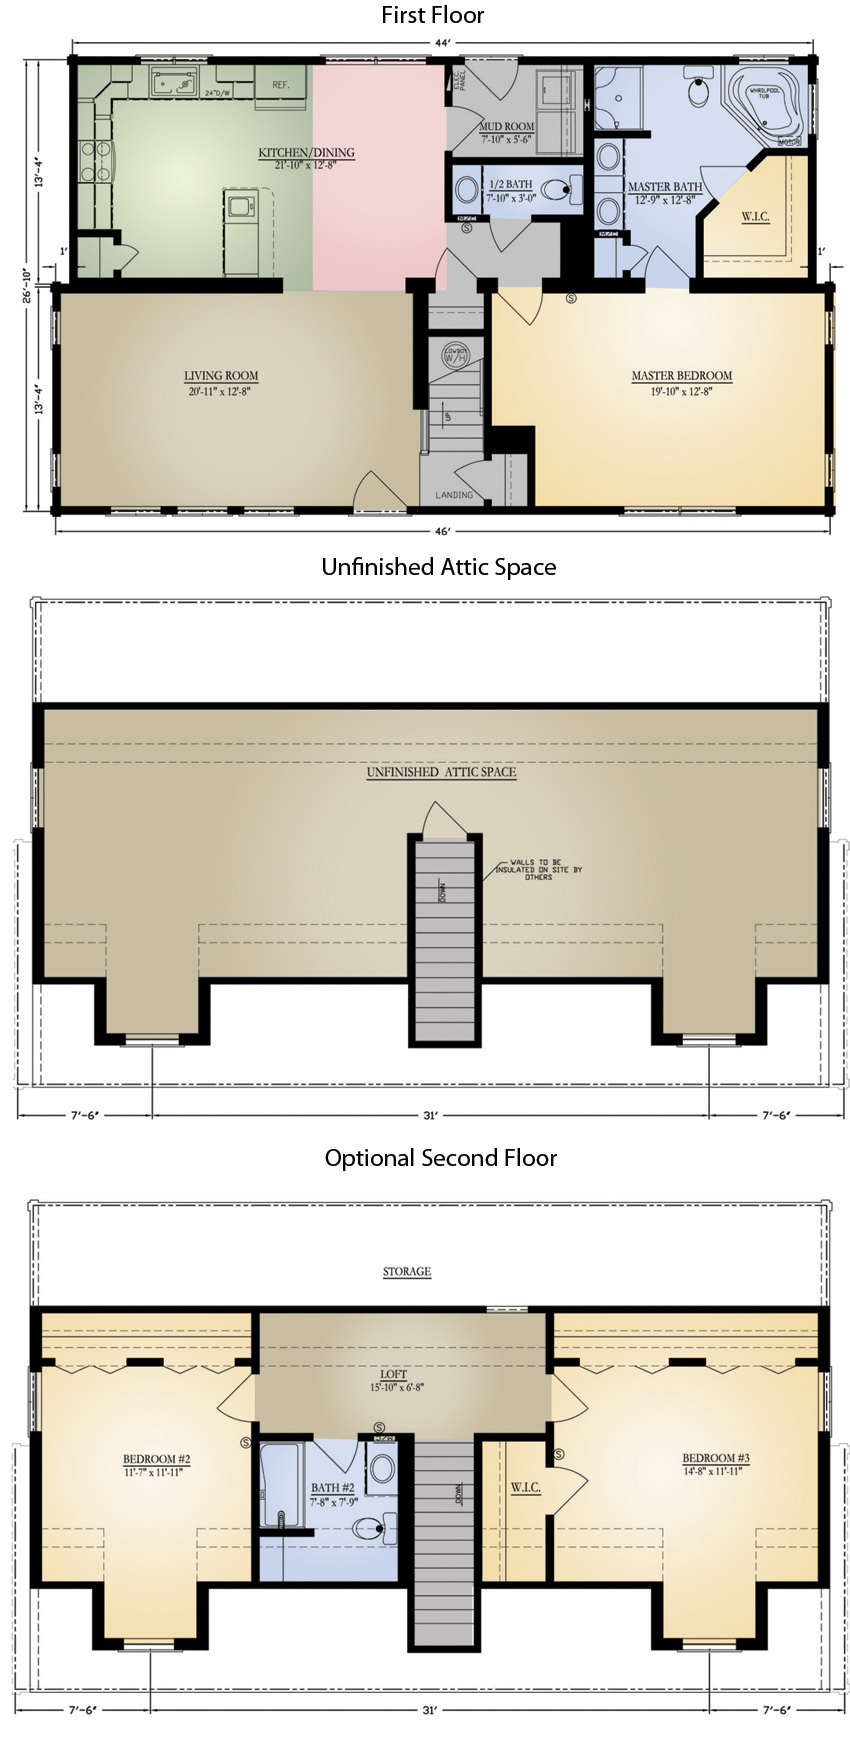 Log Home: Highlands 2 Floor Plan